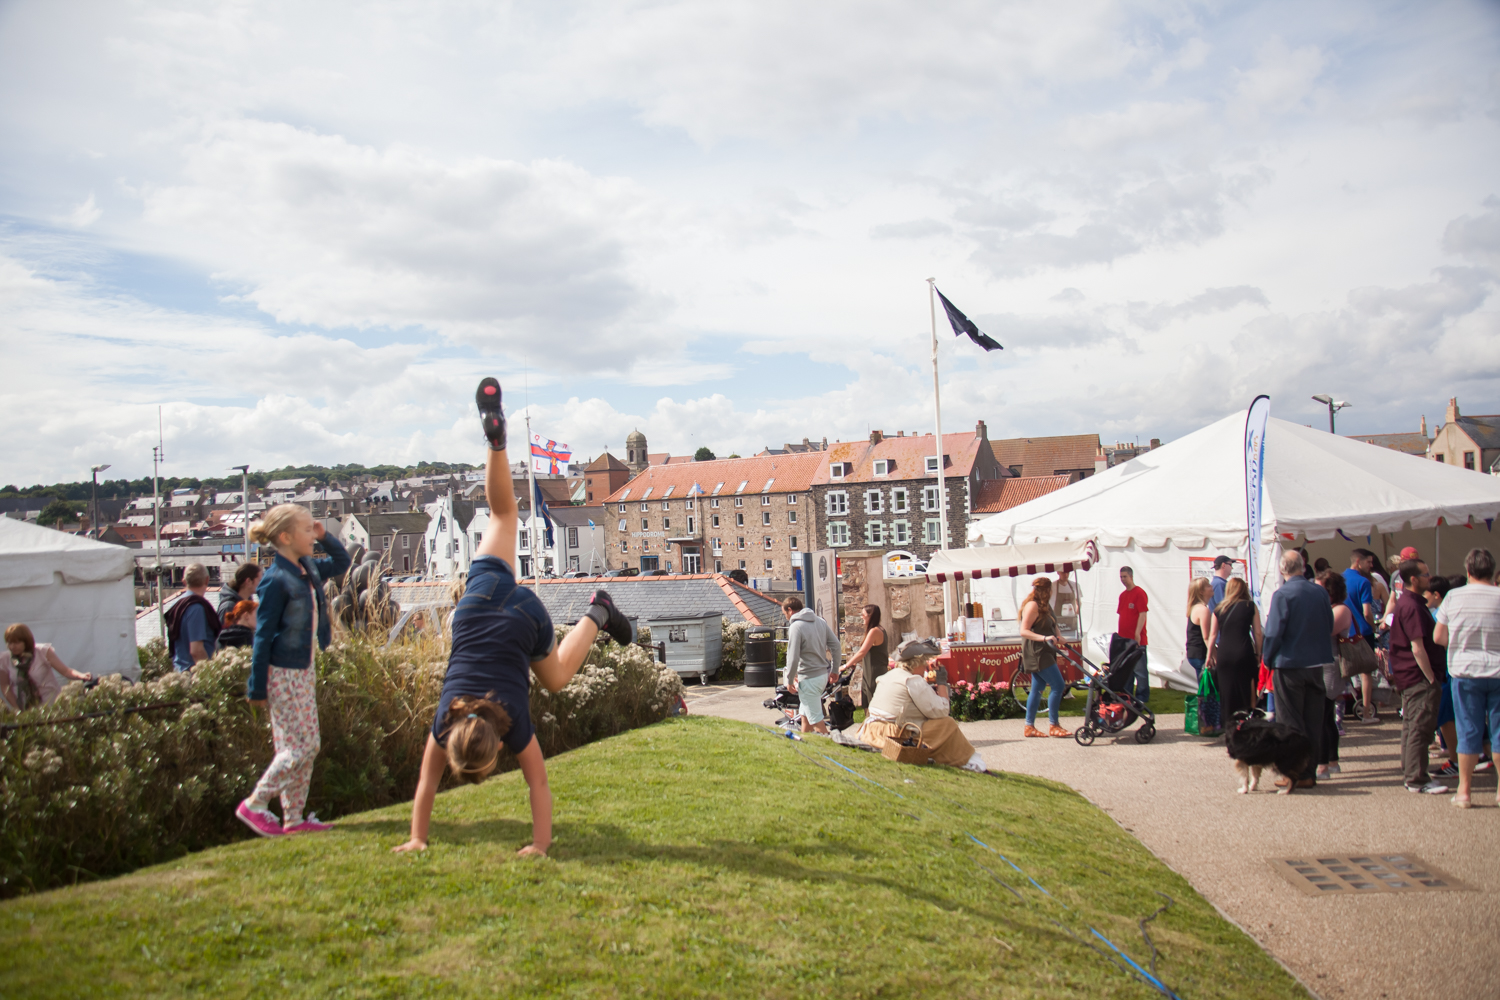 PICTORIAL_BERWICK_eyemouth-gunsgreen-extravaganza-photography-entertainment-party-event-photographer-harbour-gary-dunn-dancers-stilts-performances-speeches-day-out-summer-4563.jpg